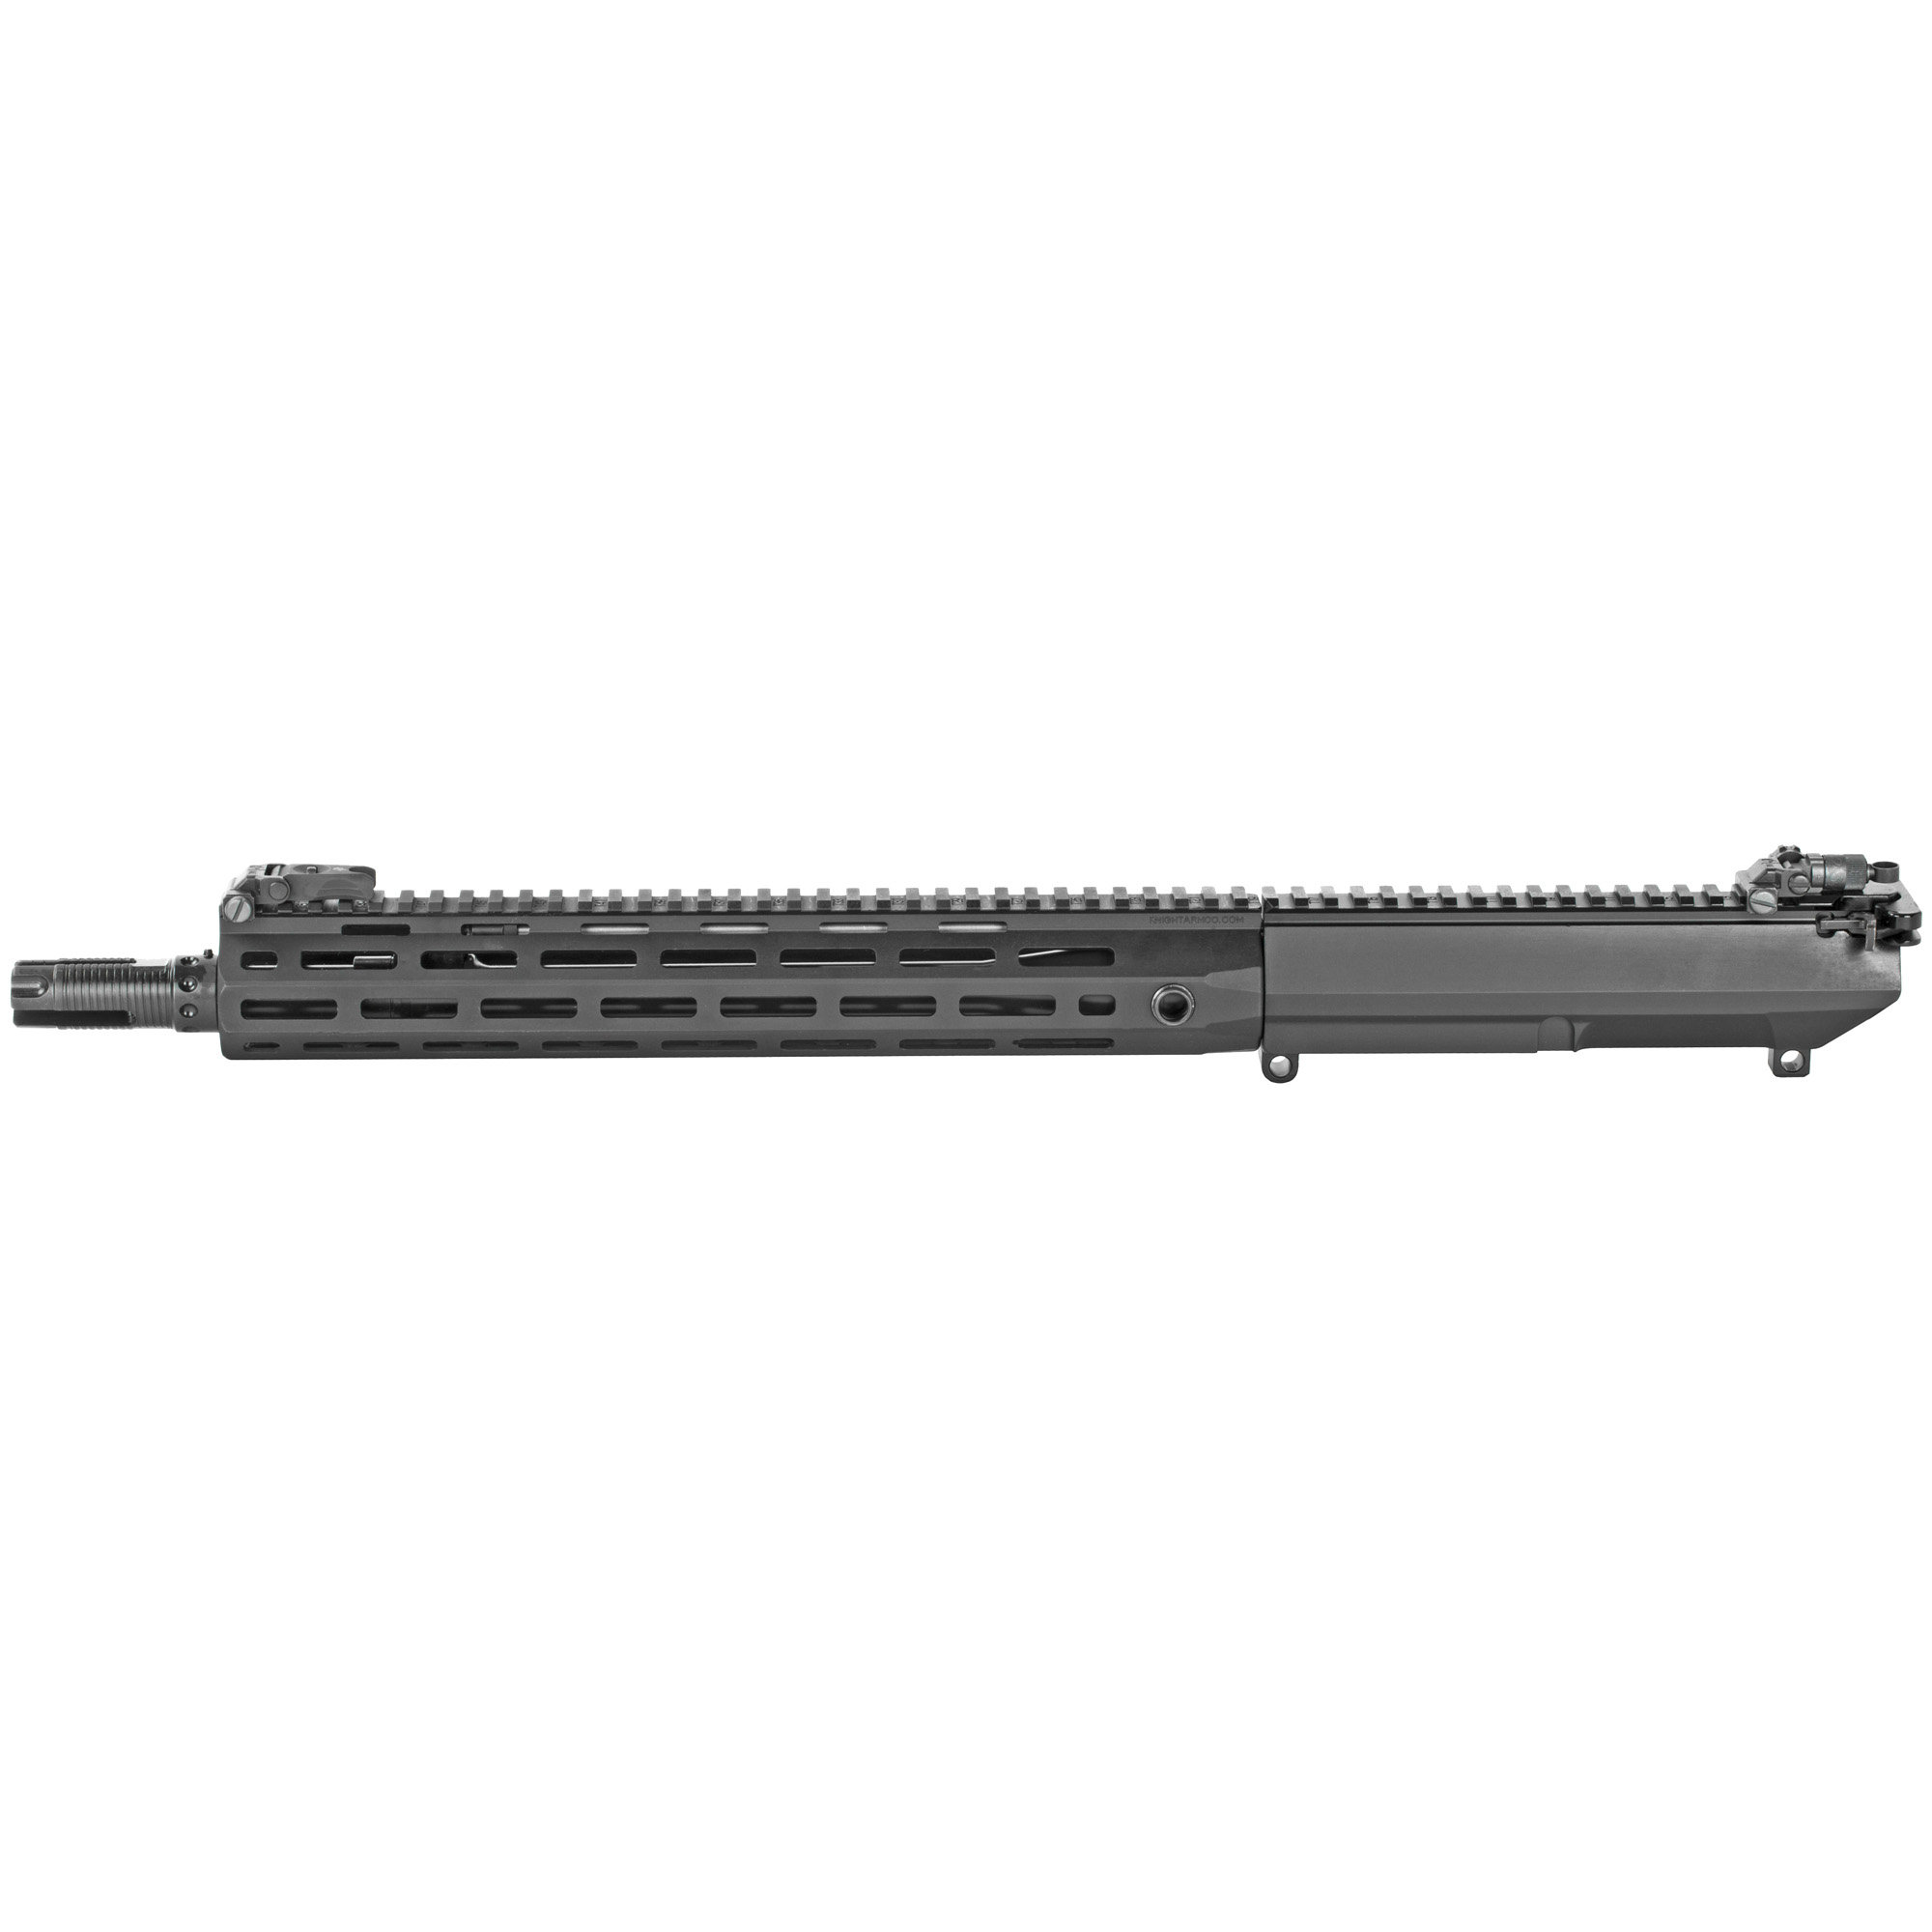 """The SR-25 14.5"""" Combat Carbine Upper kit is the latest evolution in the lightweight 7.62mm Nato Carbine platform. The 14.5"""" CC provides 7.62mm NATO performance in a package of comparable weight and size to common lower caliber platforms. Featuring the newly designed lightweight 14.5"""" barrel and the new 3-prong QDC flash hider"""" the 14.5"""" CC upper is the ultimate choice in battle rifle performance. This complete upper assembly comes standard with a 13.5"""" URX4 M-Lok handguard"""" Knight's Armament Micro Front Sight"""" Knight's Armament Micro 600m Rear Sight"""" SR-25 Buffer"""" SR-25 Action Spring"""" and Magpul M-Lok cover kit."""